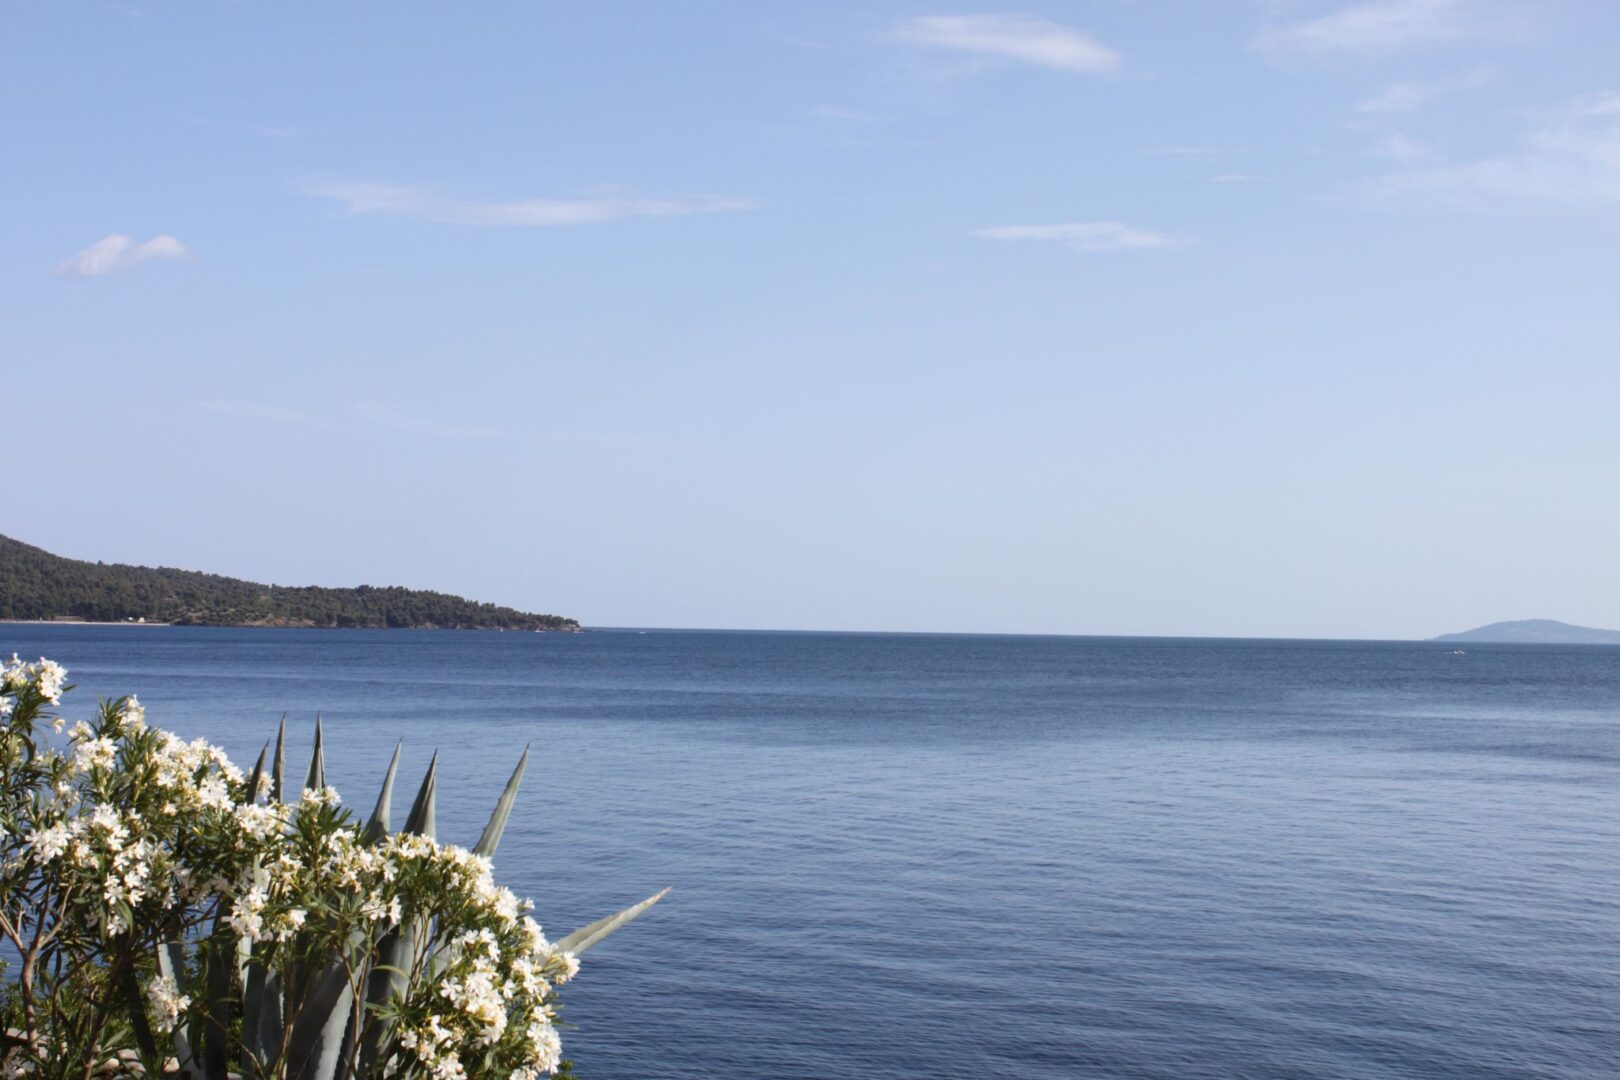 Visit the majestic Neos Marmaras in Chalkidiki